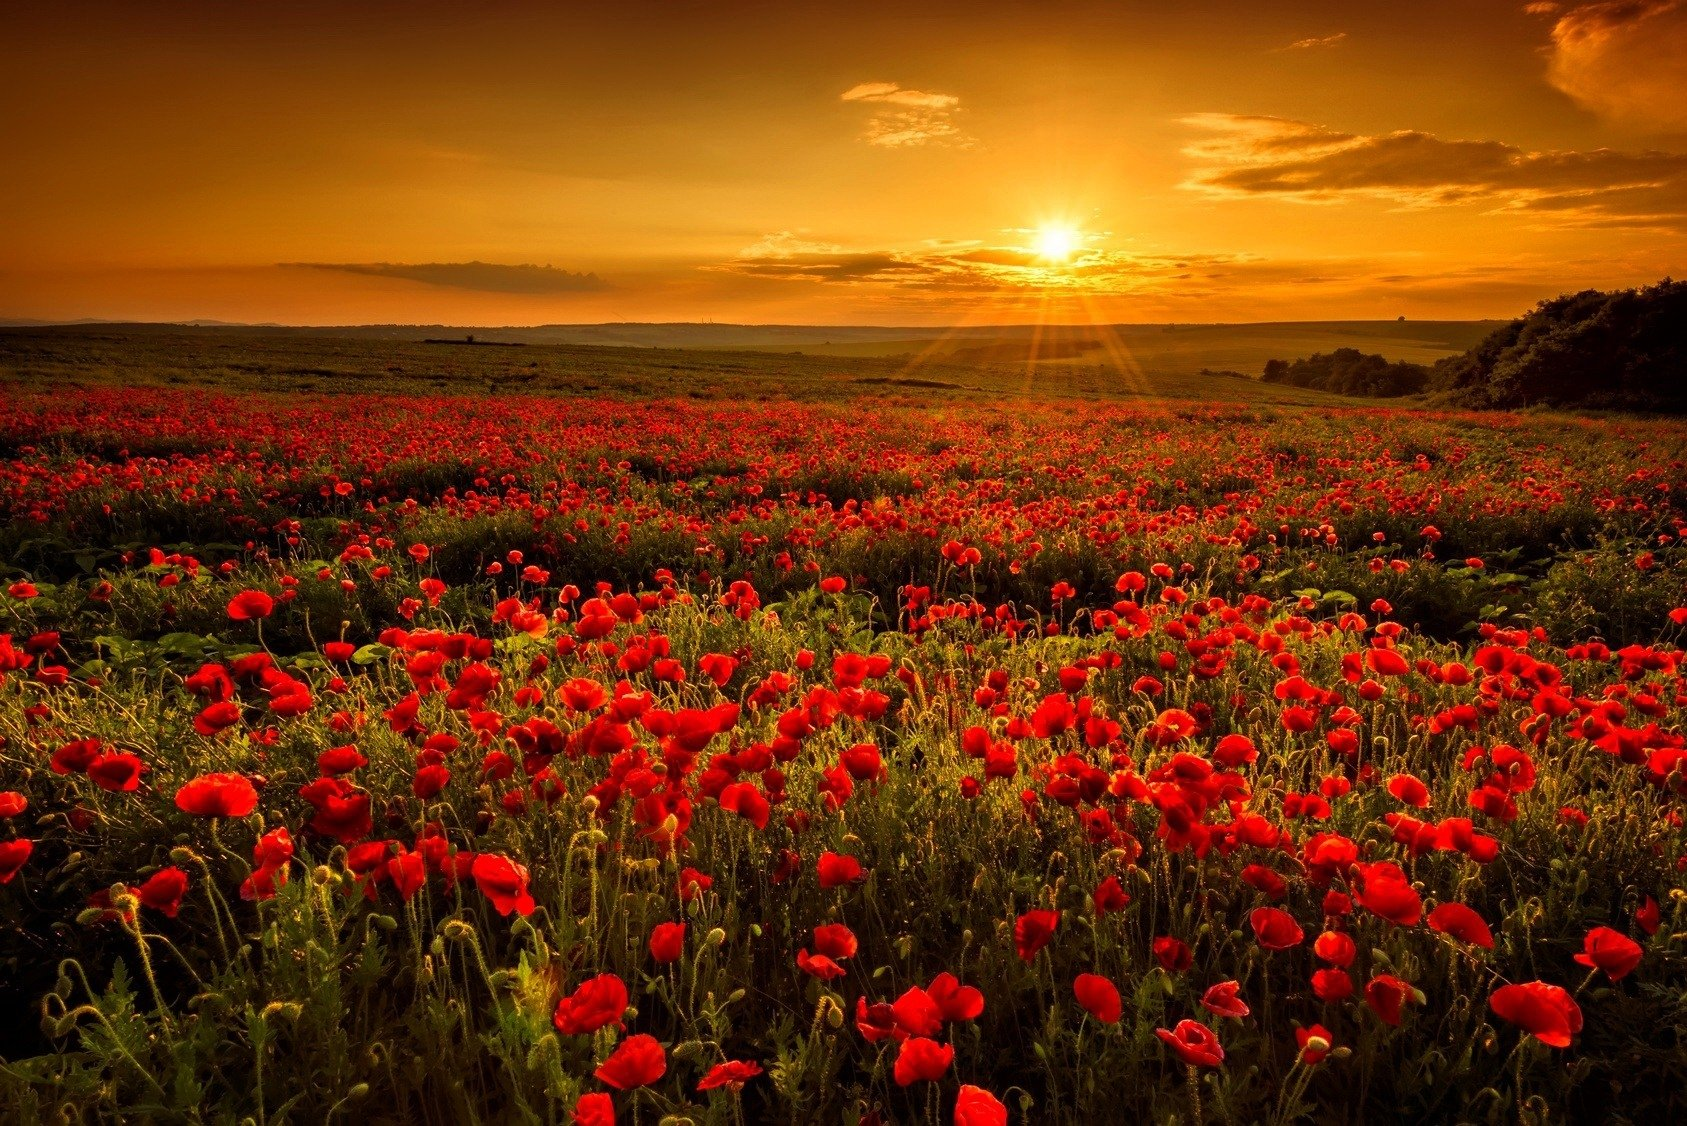 Iphone Wallpaper Pinterest Poppy Field Sunset 壁纸 And 背景 1687x1126 Id 696132